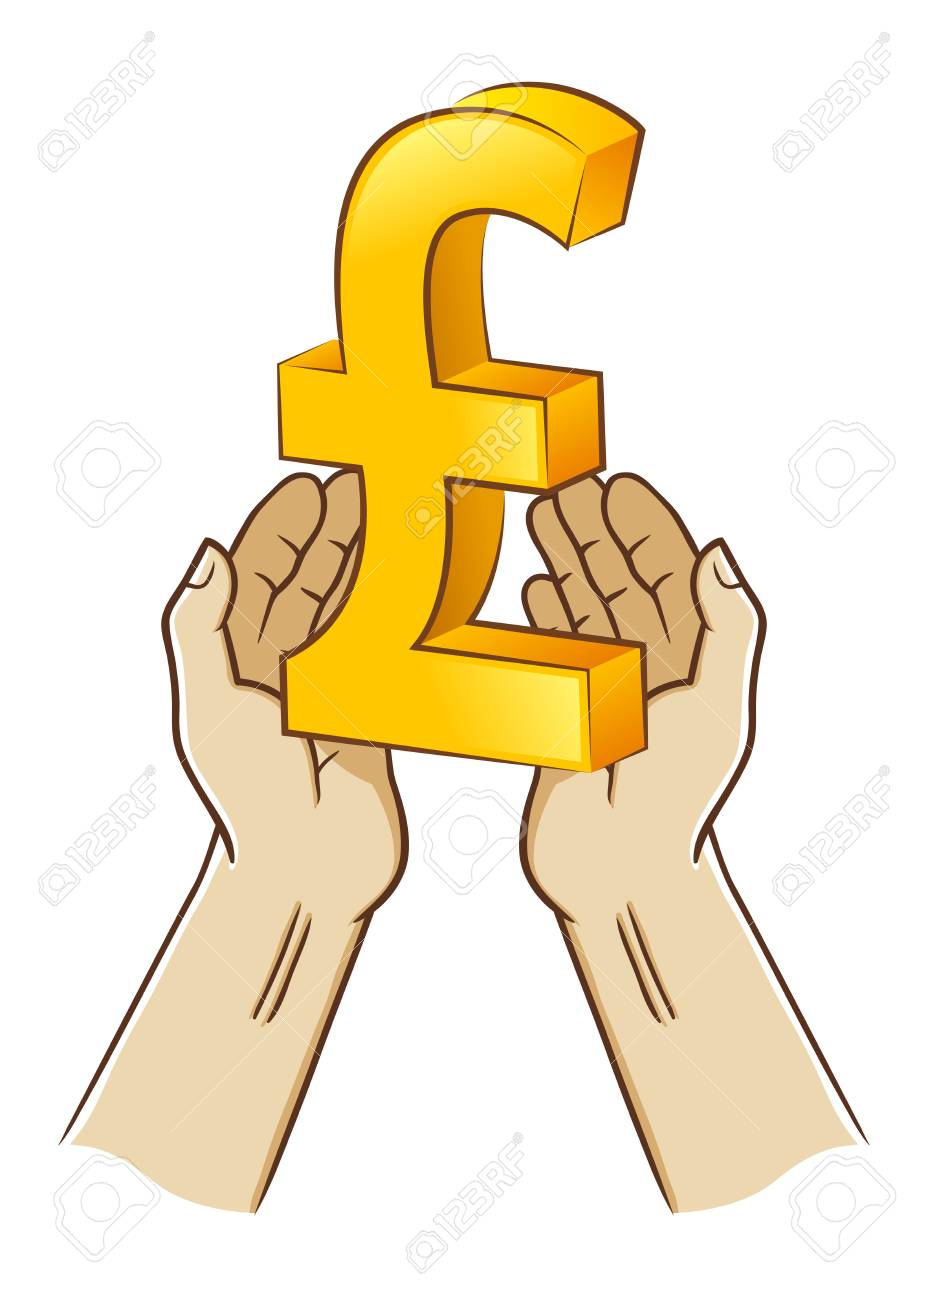 Vector Stock Of Two Hand Holding Pound Sterling Currency Symbol